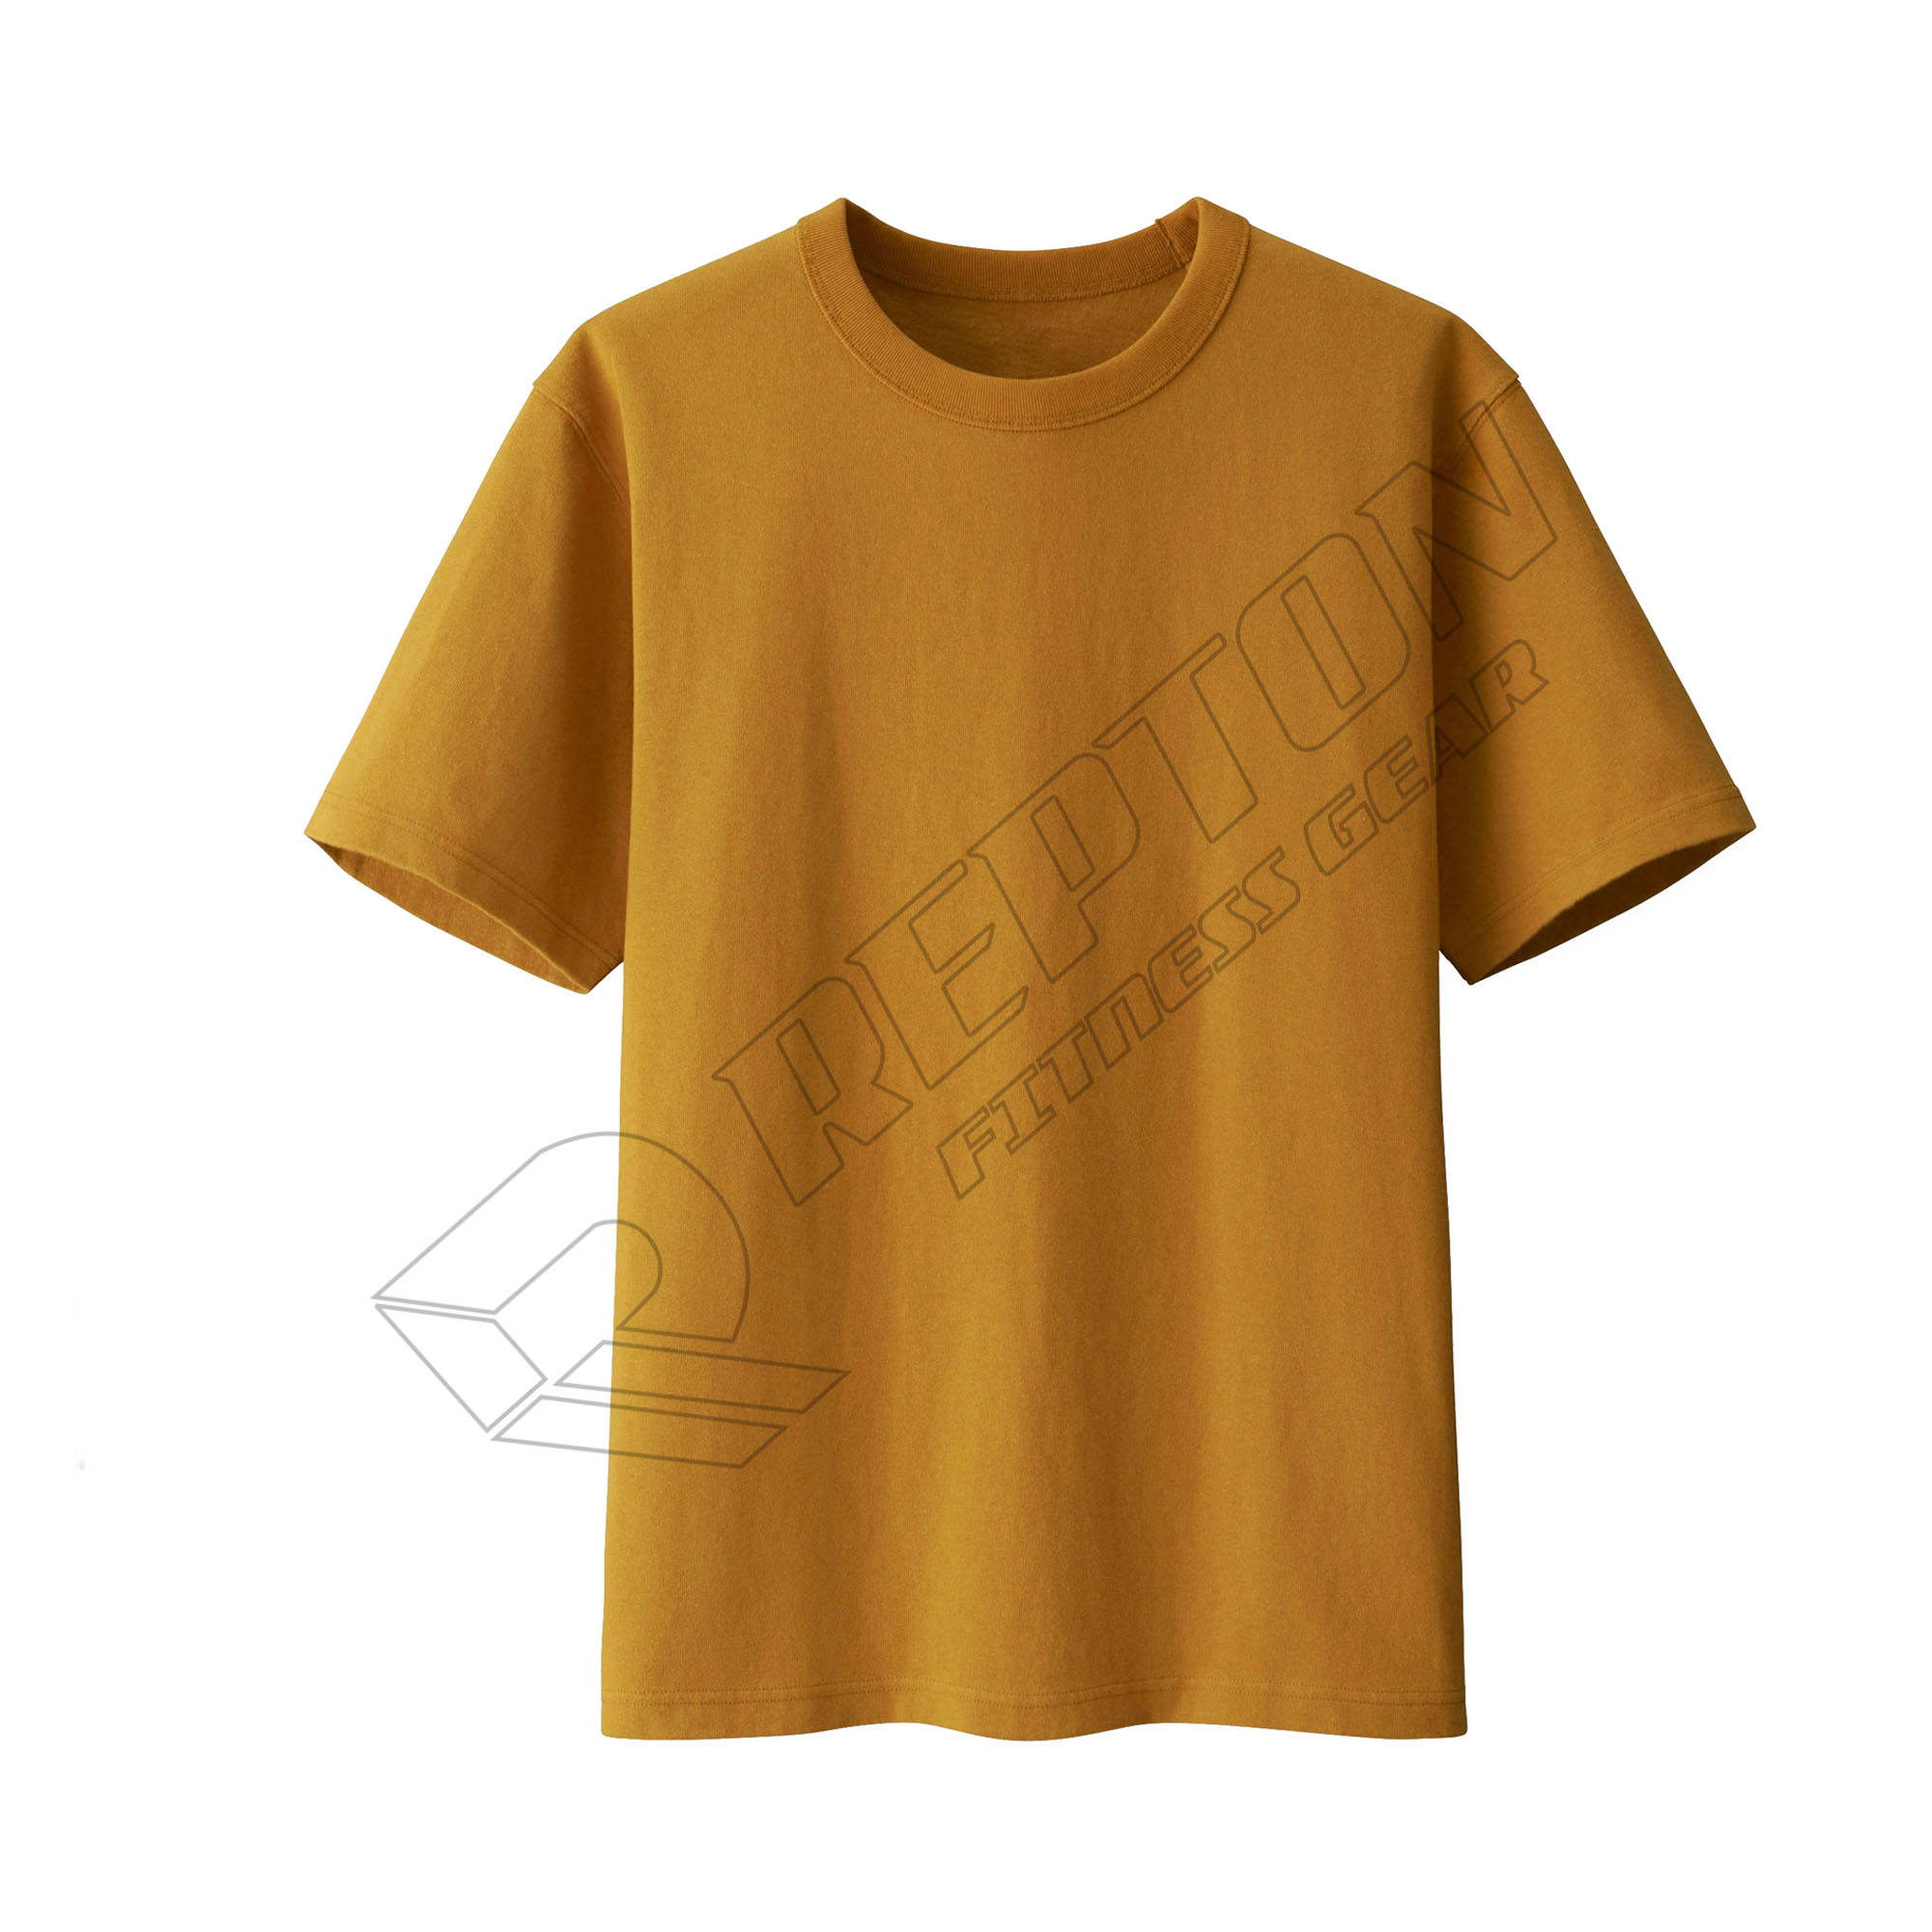 Pakistan Supplier Blank 100 Cotton T shirt For Custom T-shirts Design Printing Alibaba Express Clothing Manufacturers